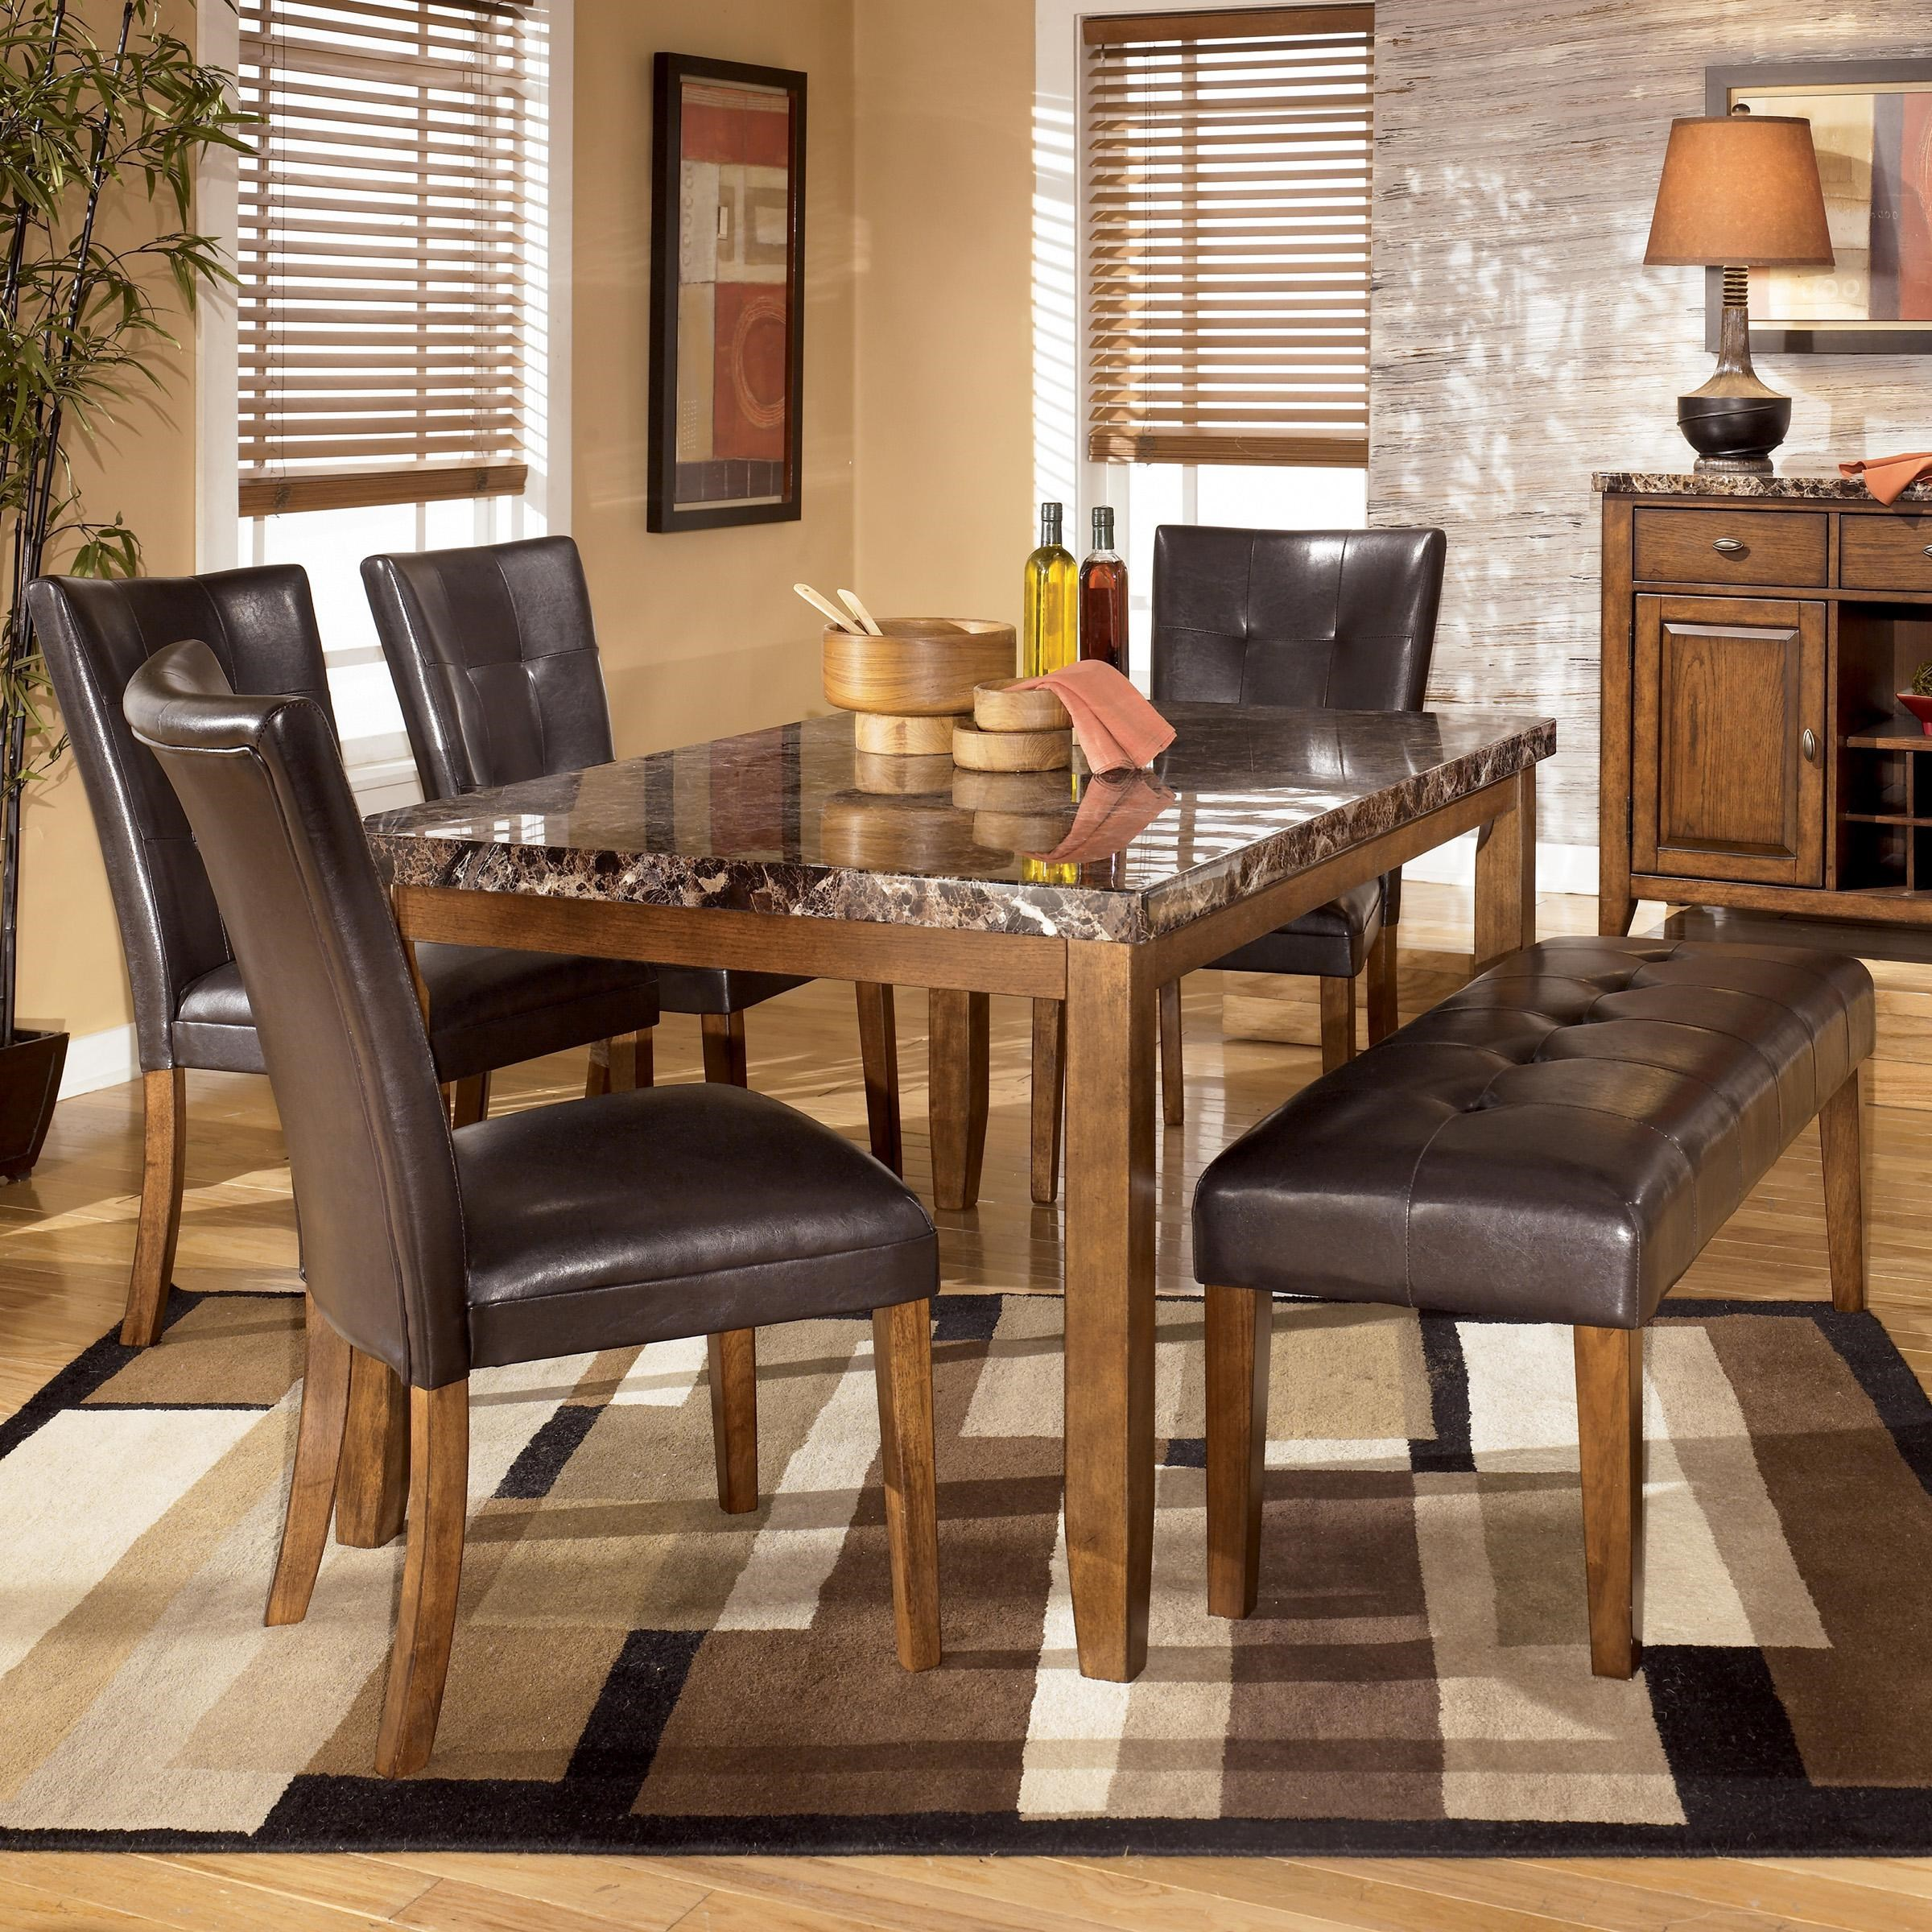 Signature Design By Ashley Lacey 6 Piece Dining Table With Side Chairs Bench Set Royal Furniture Table Chair Set With Bench